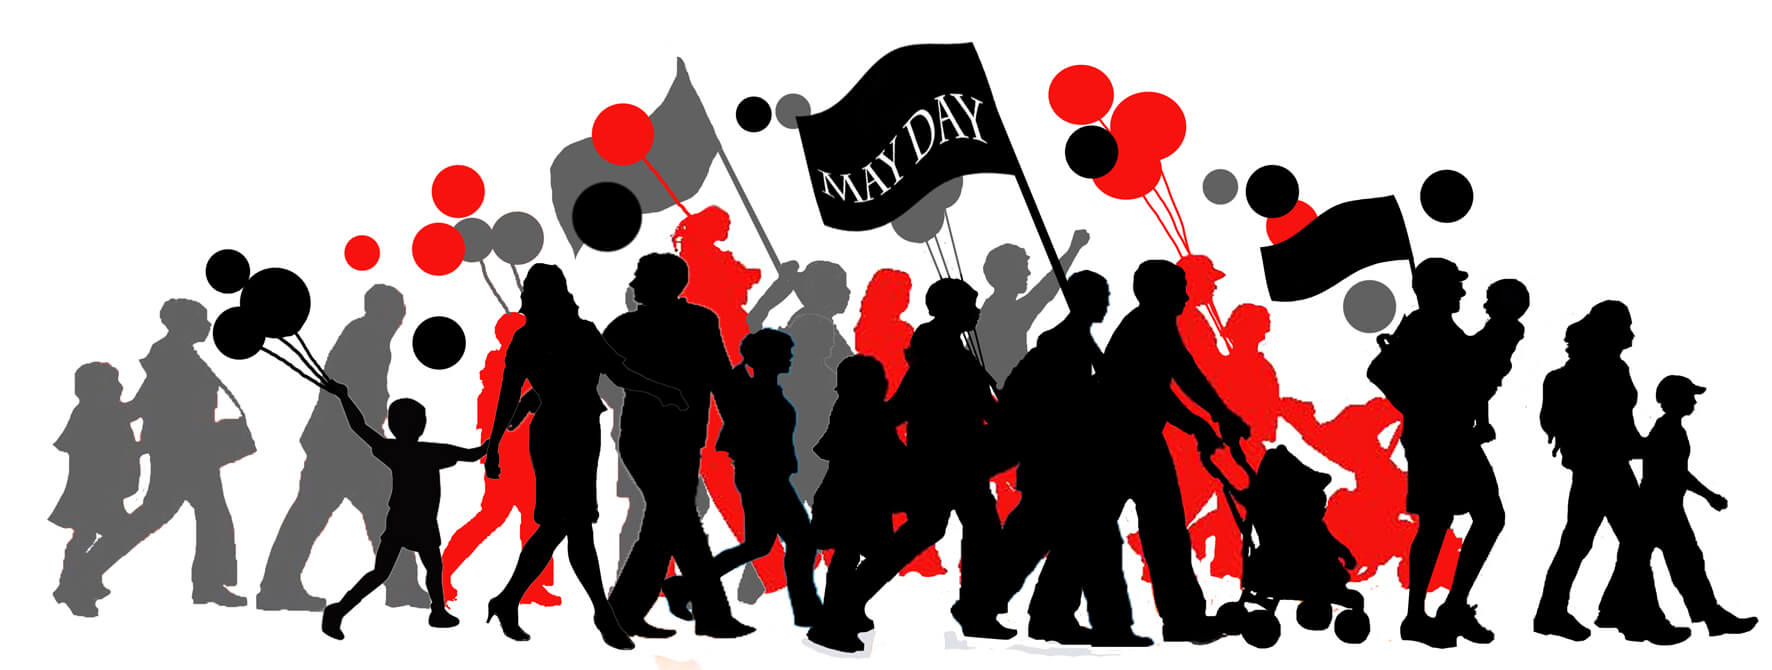 happy may labor day latest hd wallpaper